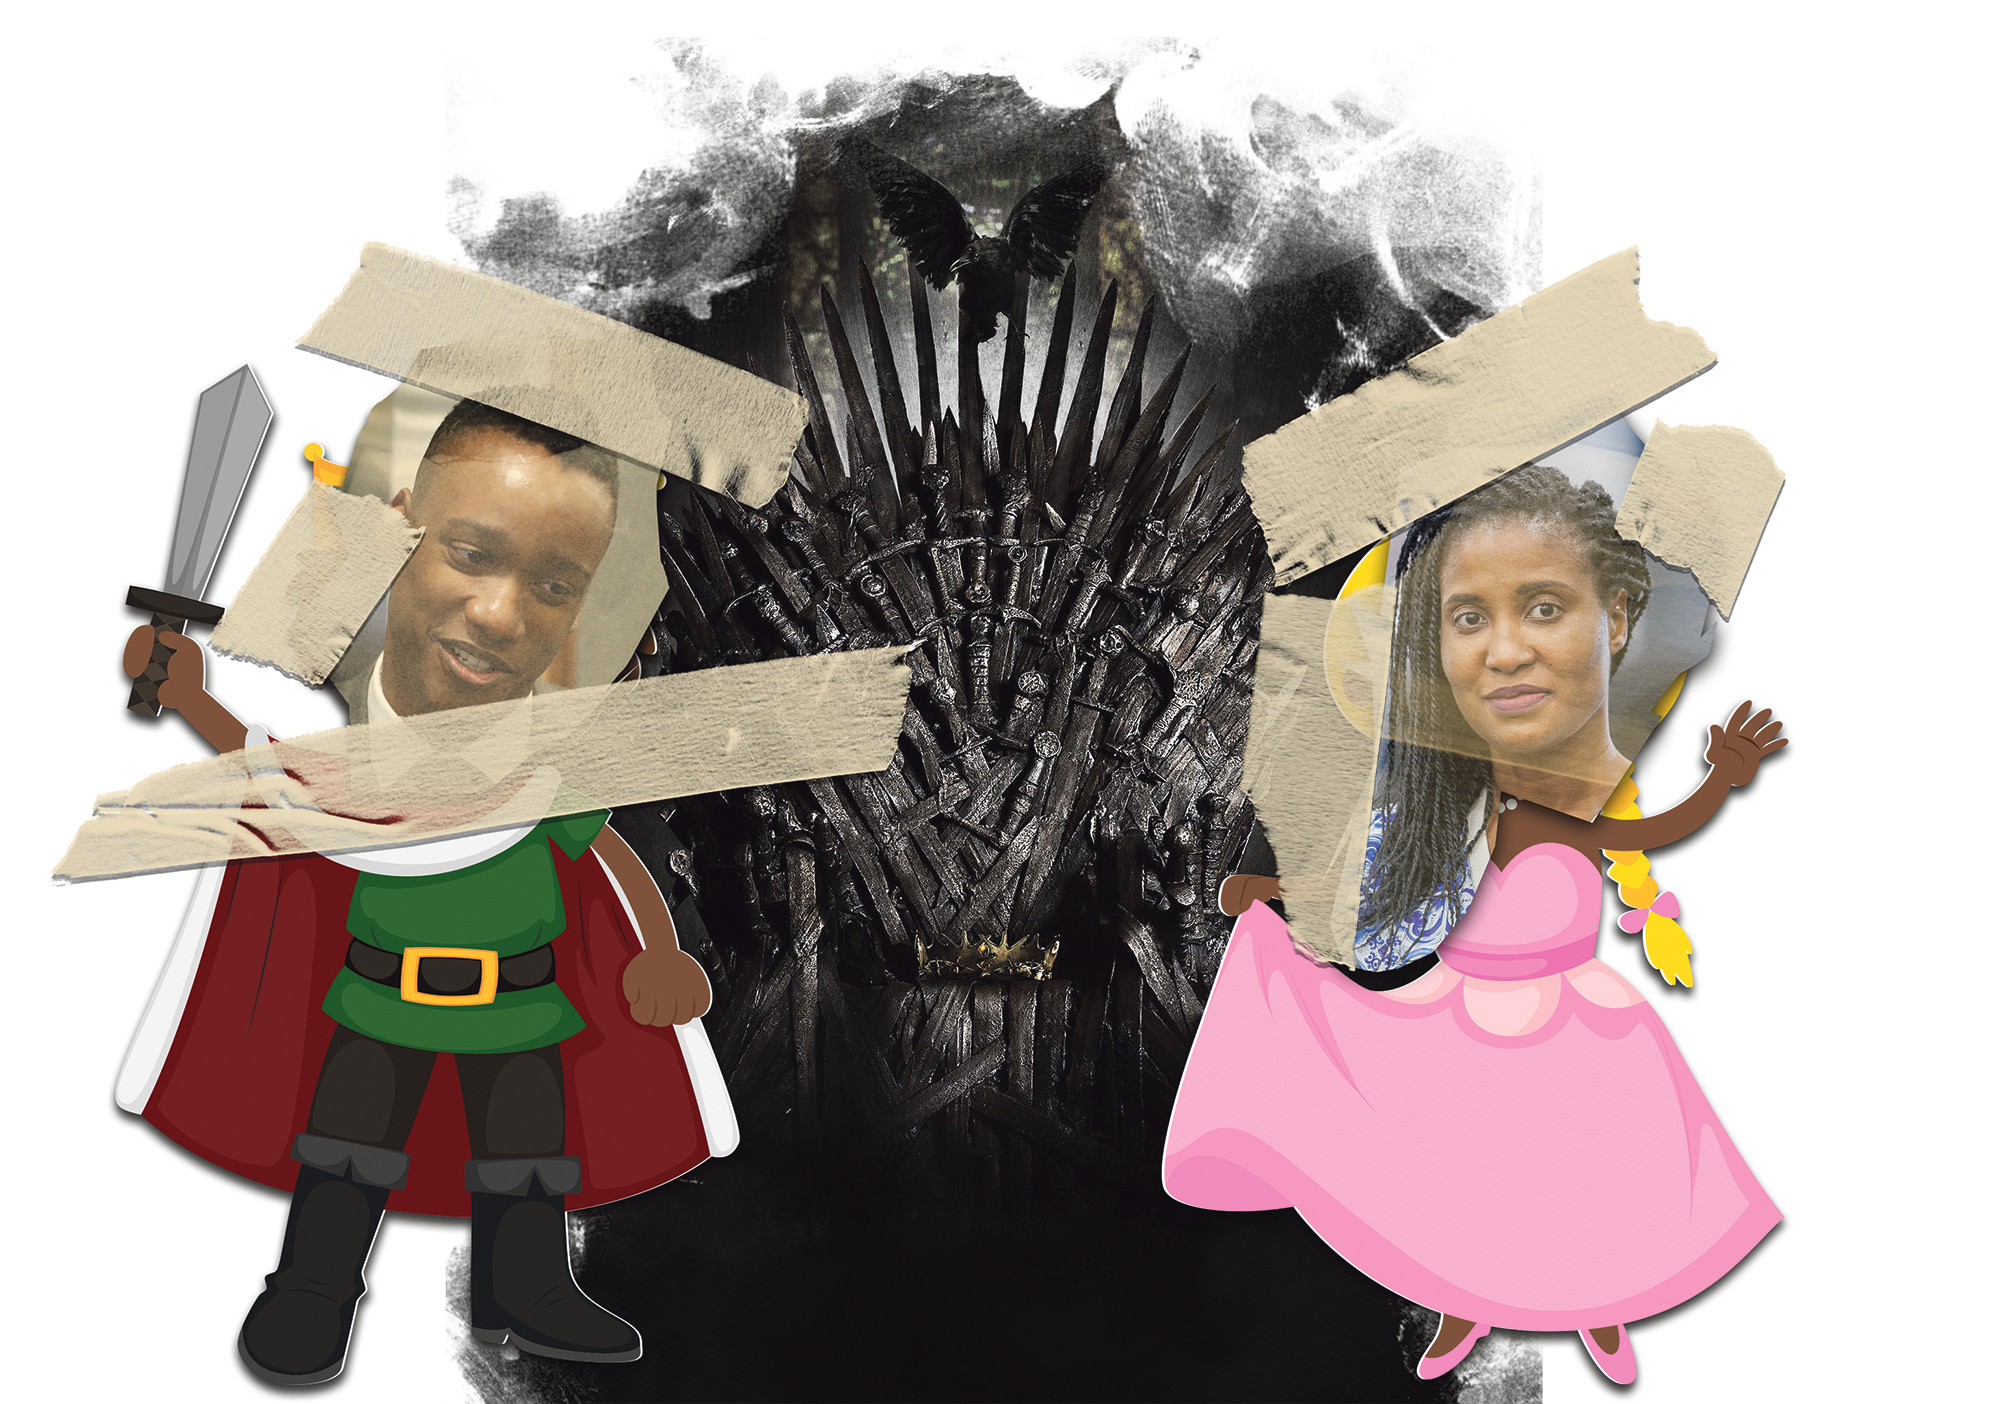 DM168 TONGUE IN CHEEK: World of Westeros: The Dudus' quest for the Iron Throne